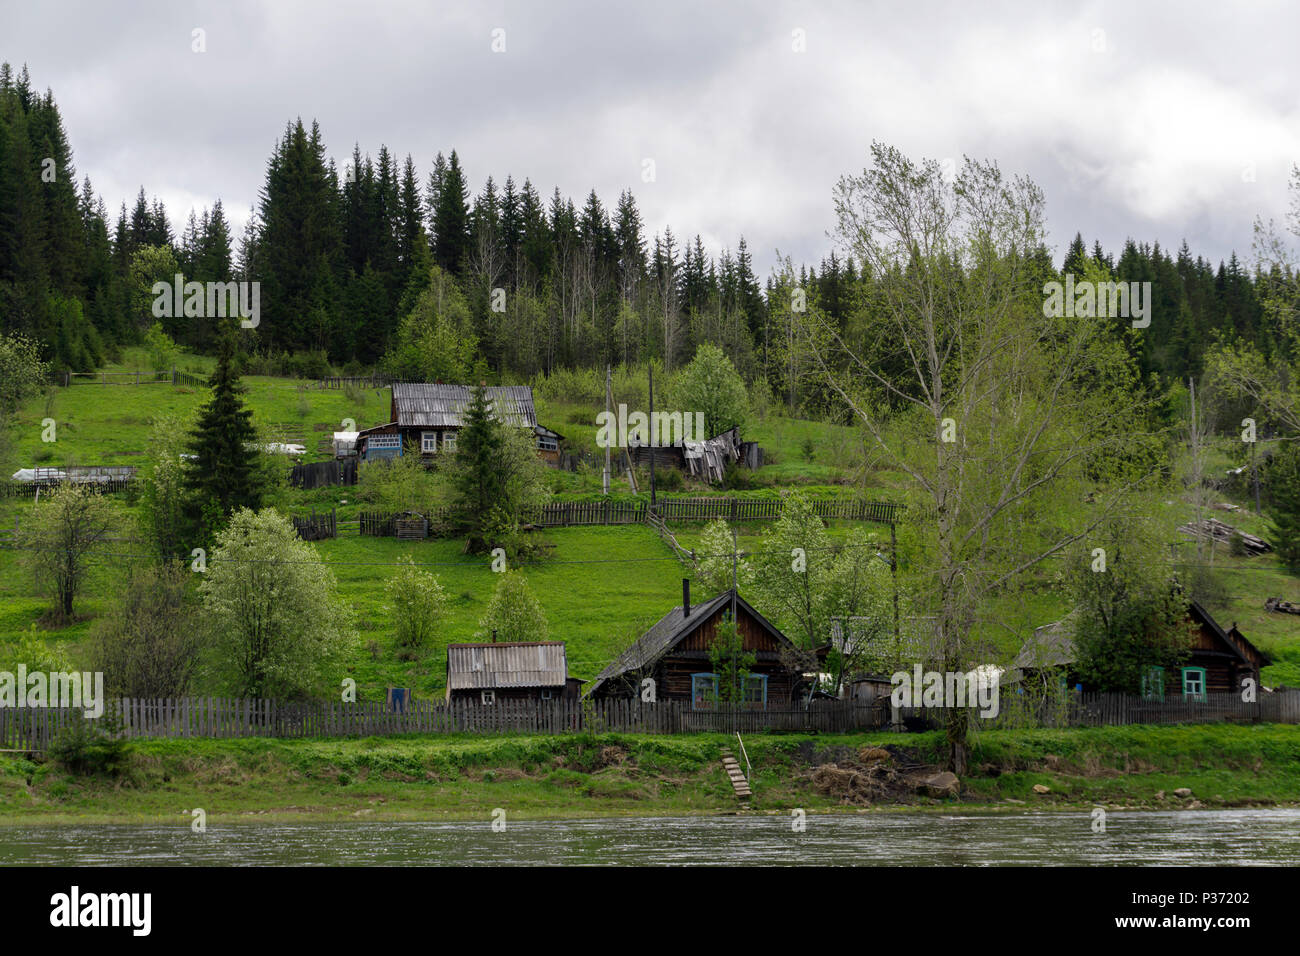 landscape of a small Ural village with wooden huts on the river bank in the forest on a cloudy day - Stock Image